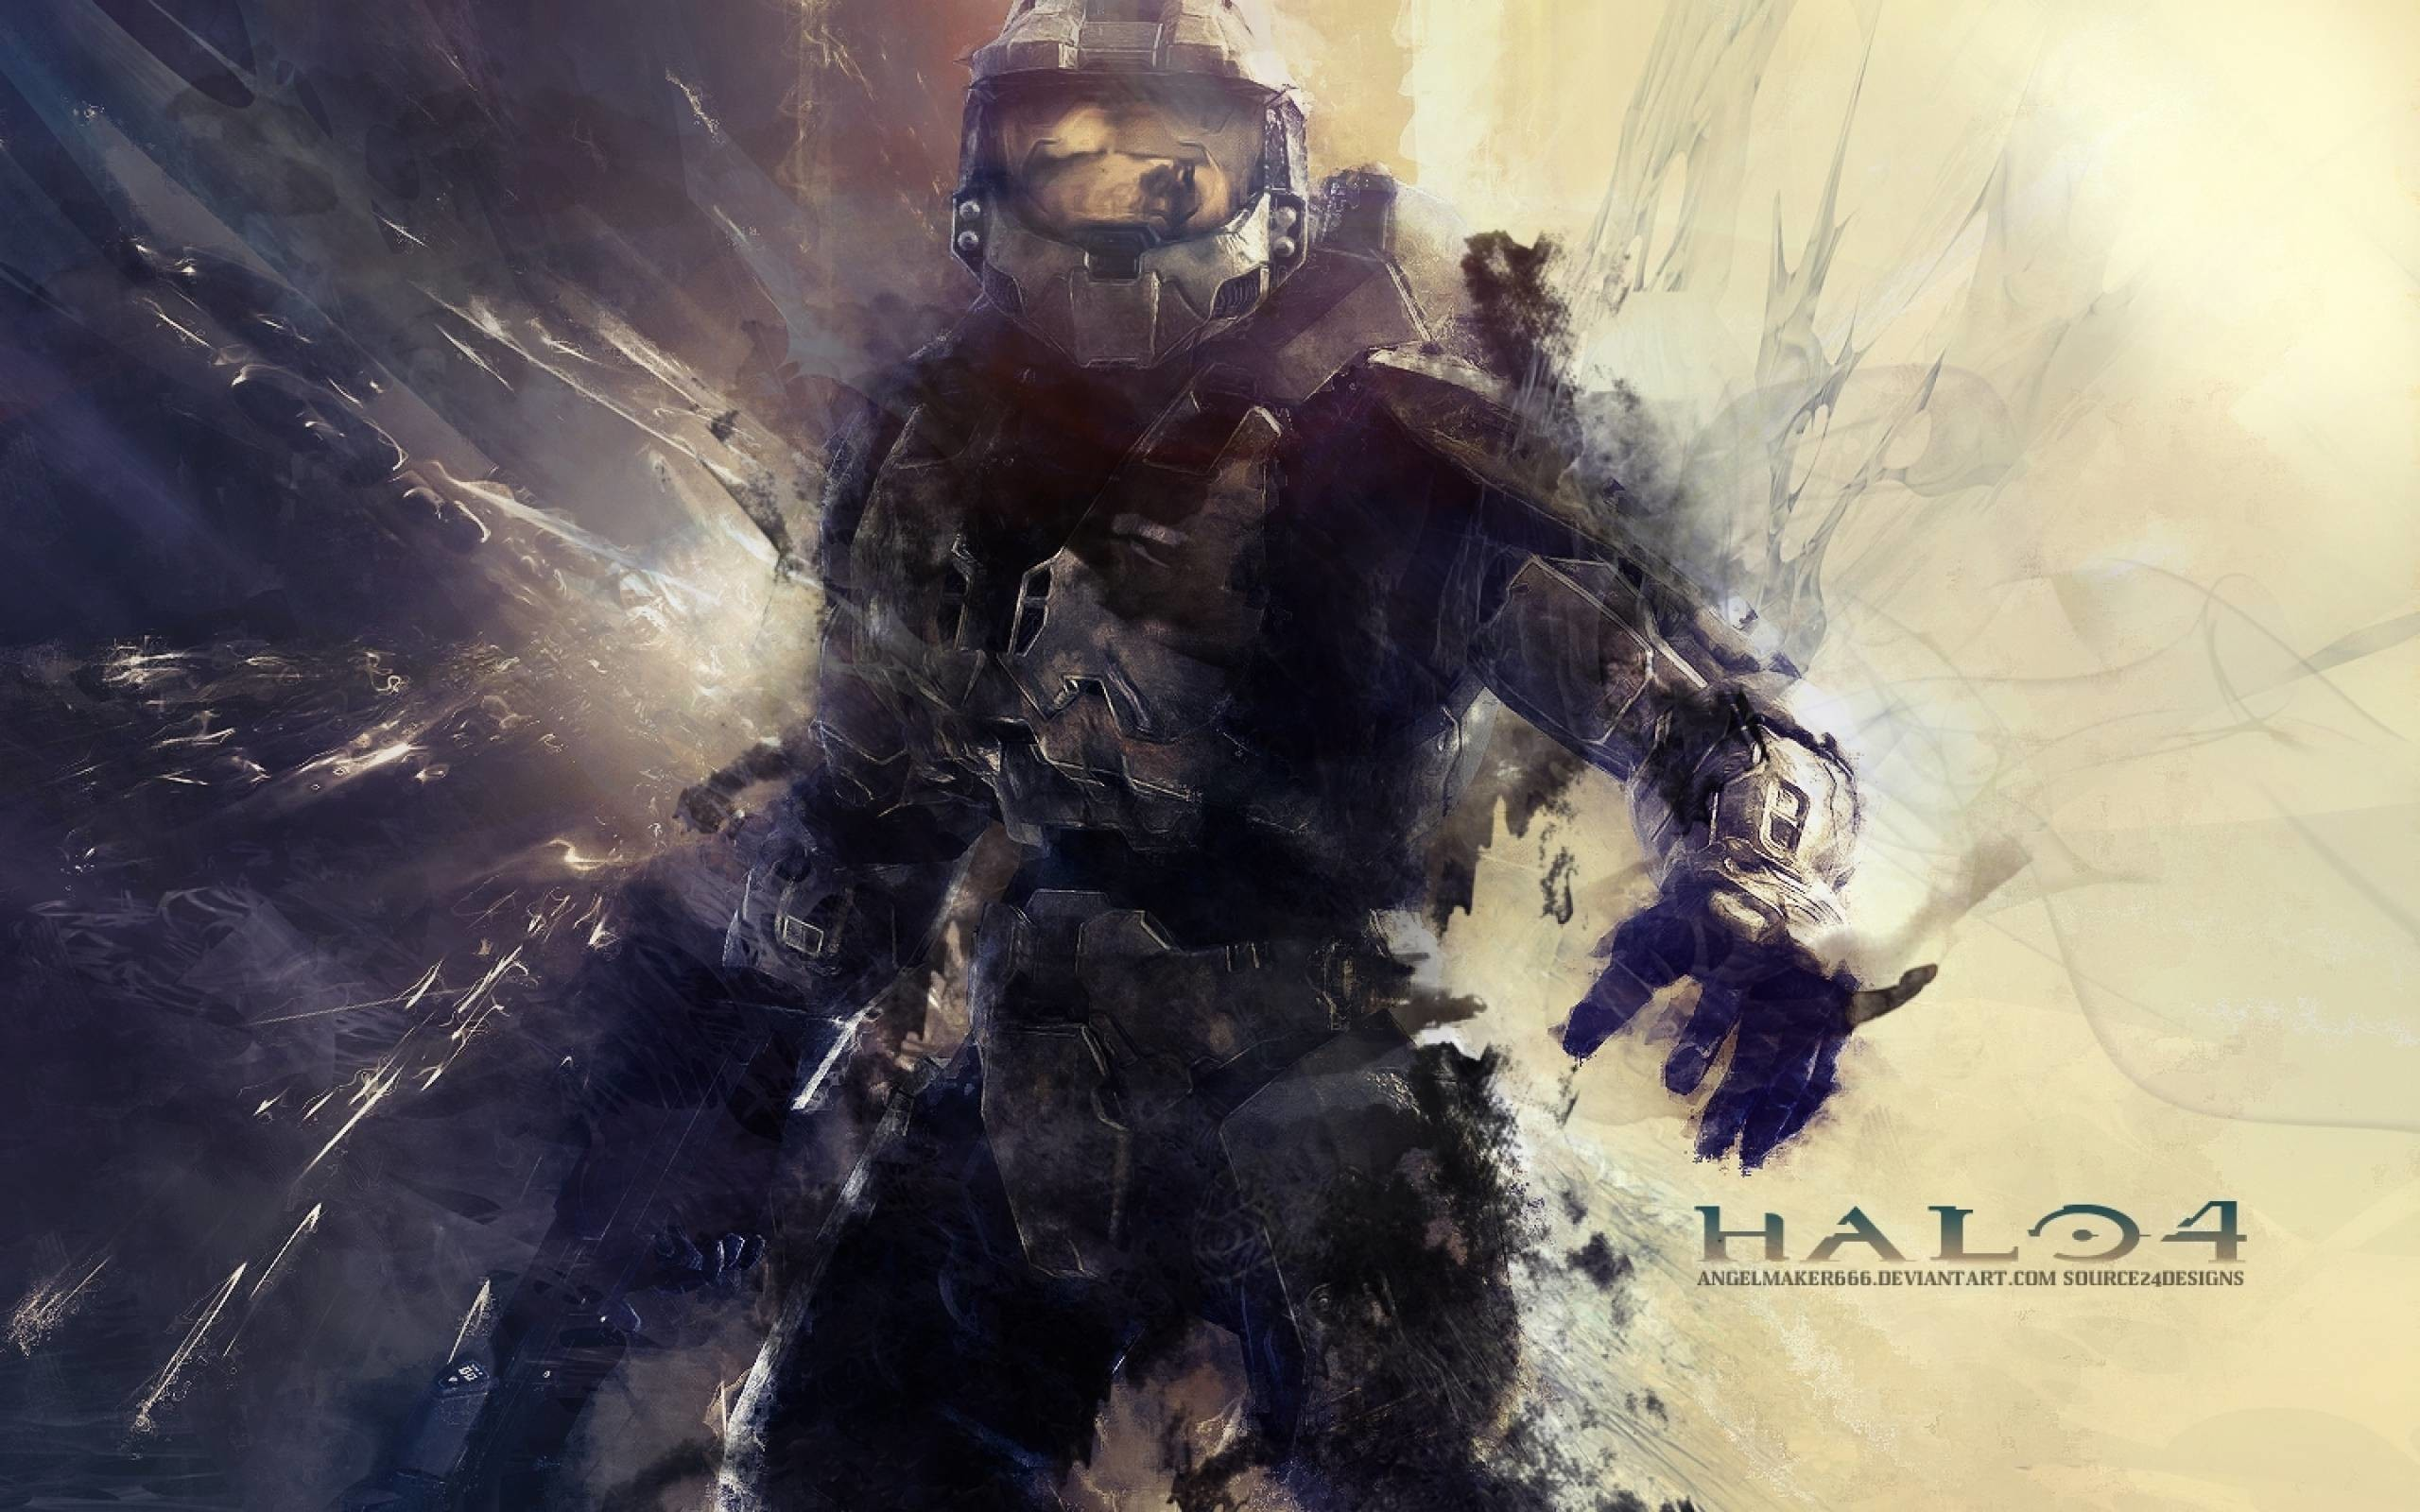 Halo 4 hd backgrounds 79 images 2560x1600 halo wallpapers full hd wallpaper search voltagebd Choice Image